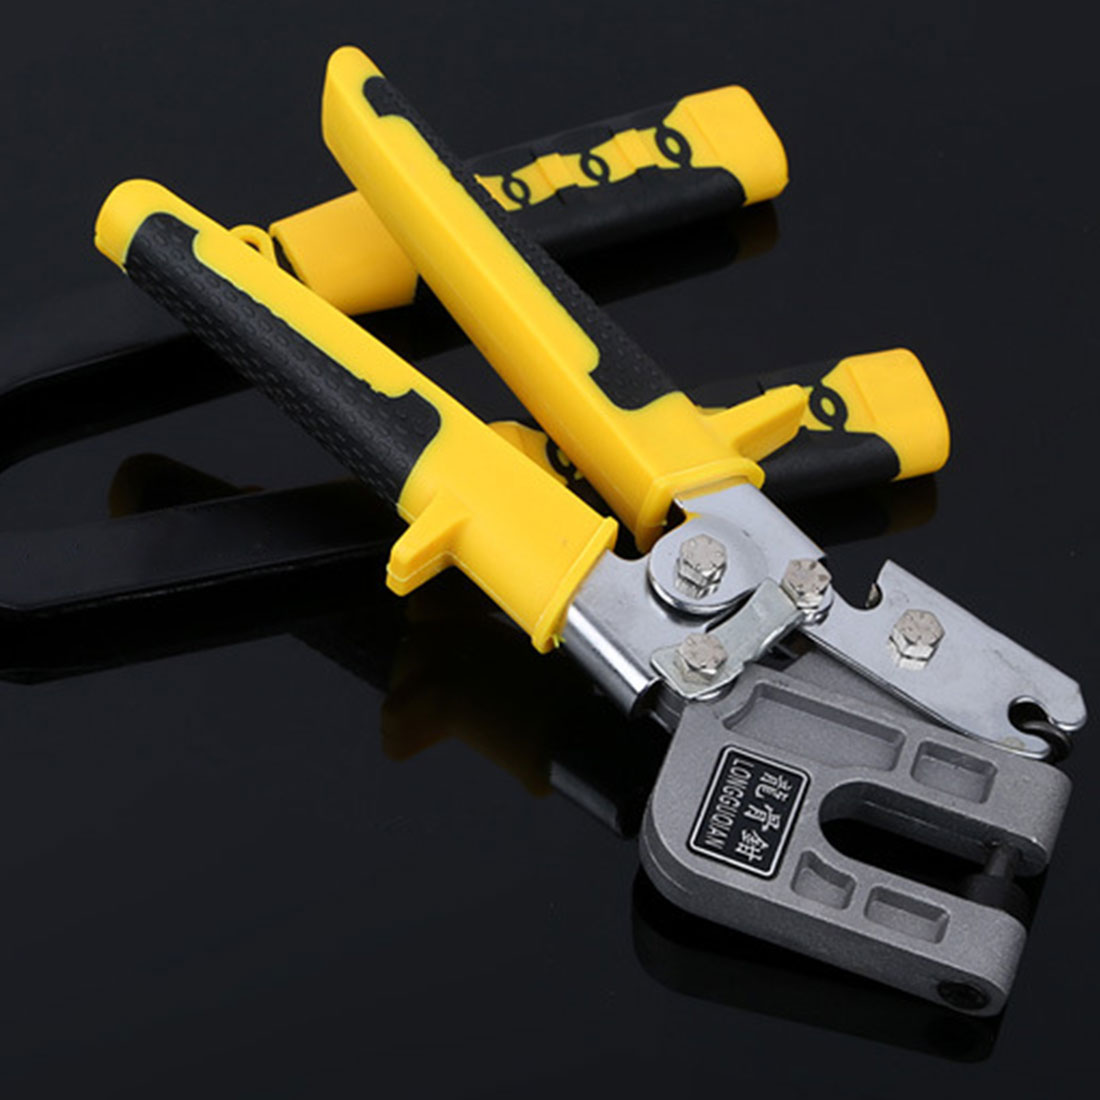 1PCS 10 Inch Handle Stud Crimper Plaster Board Drywall Pliers For Fastening Metal Studs